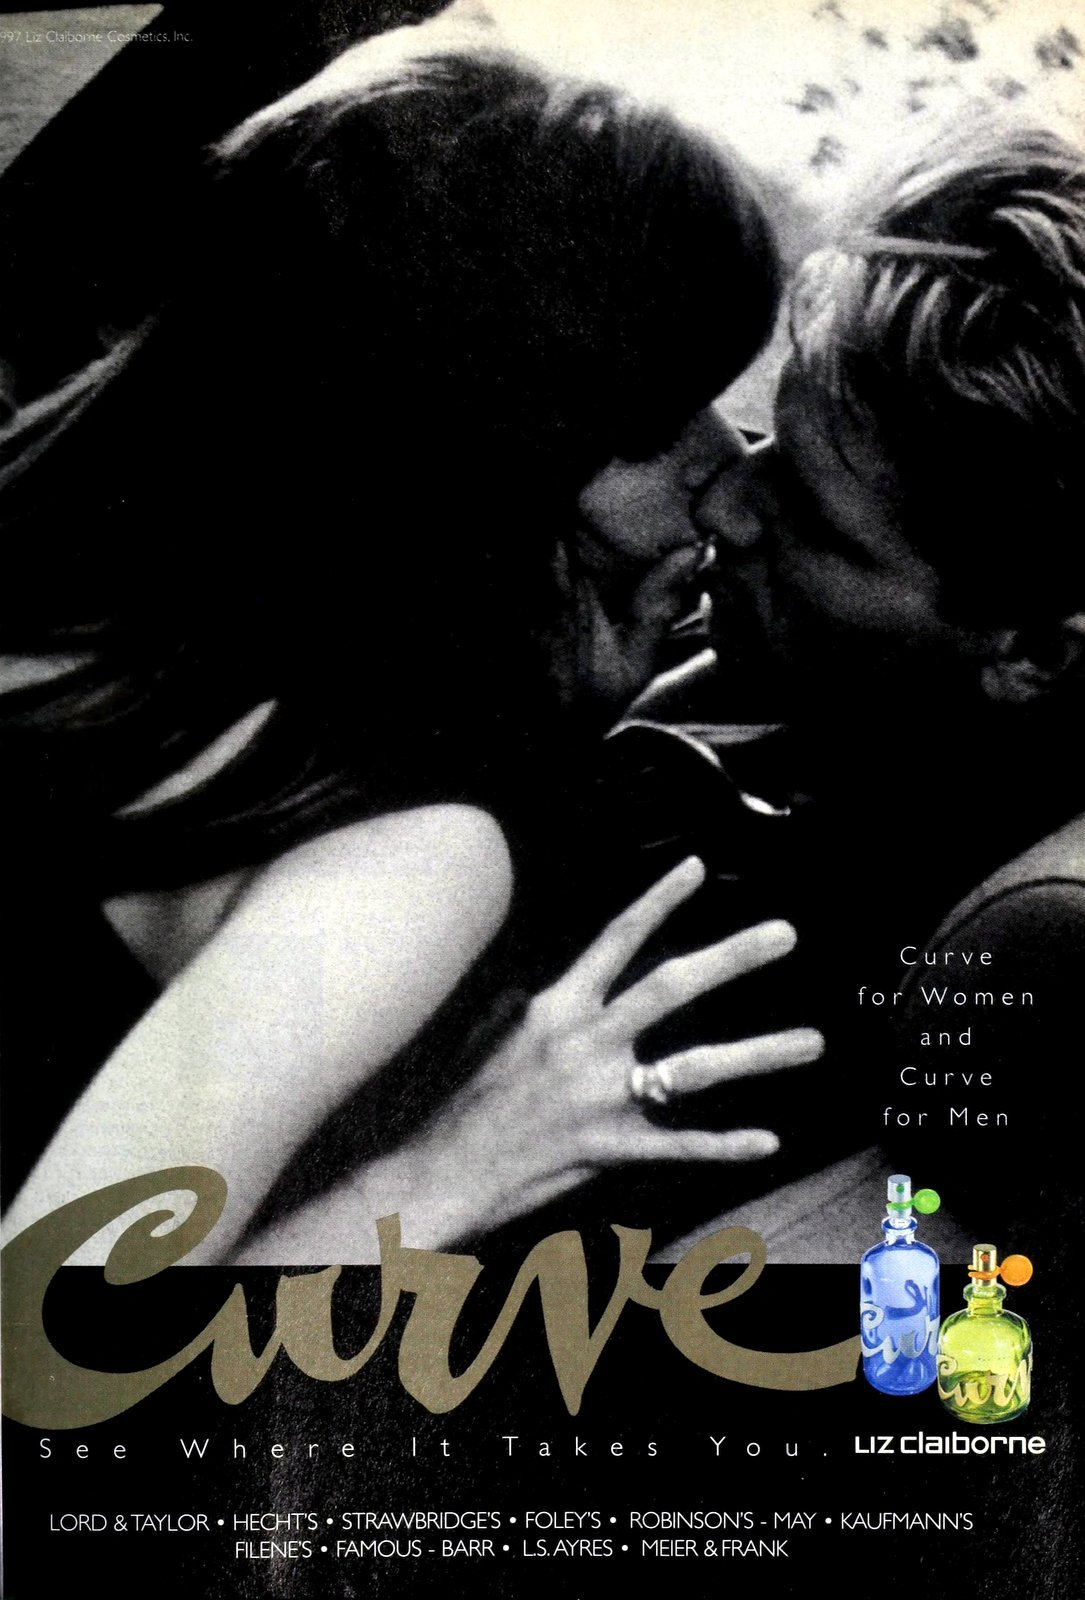 Curve for men and for women from Liz Claiborne (1995) at ClickAmericana com